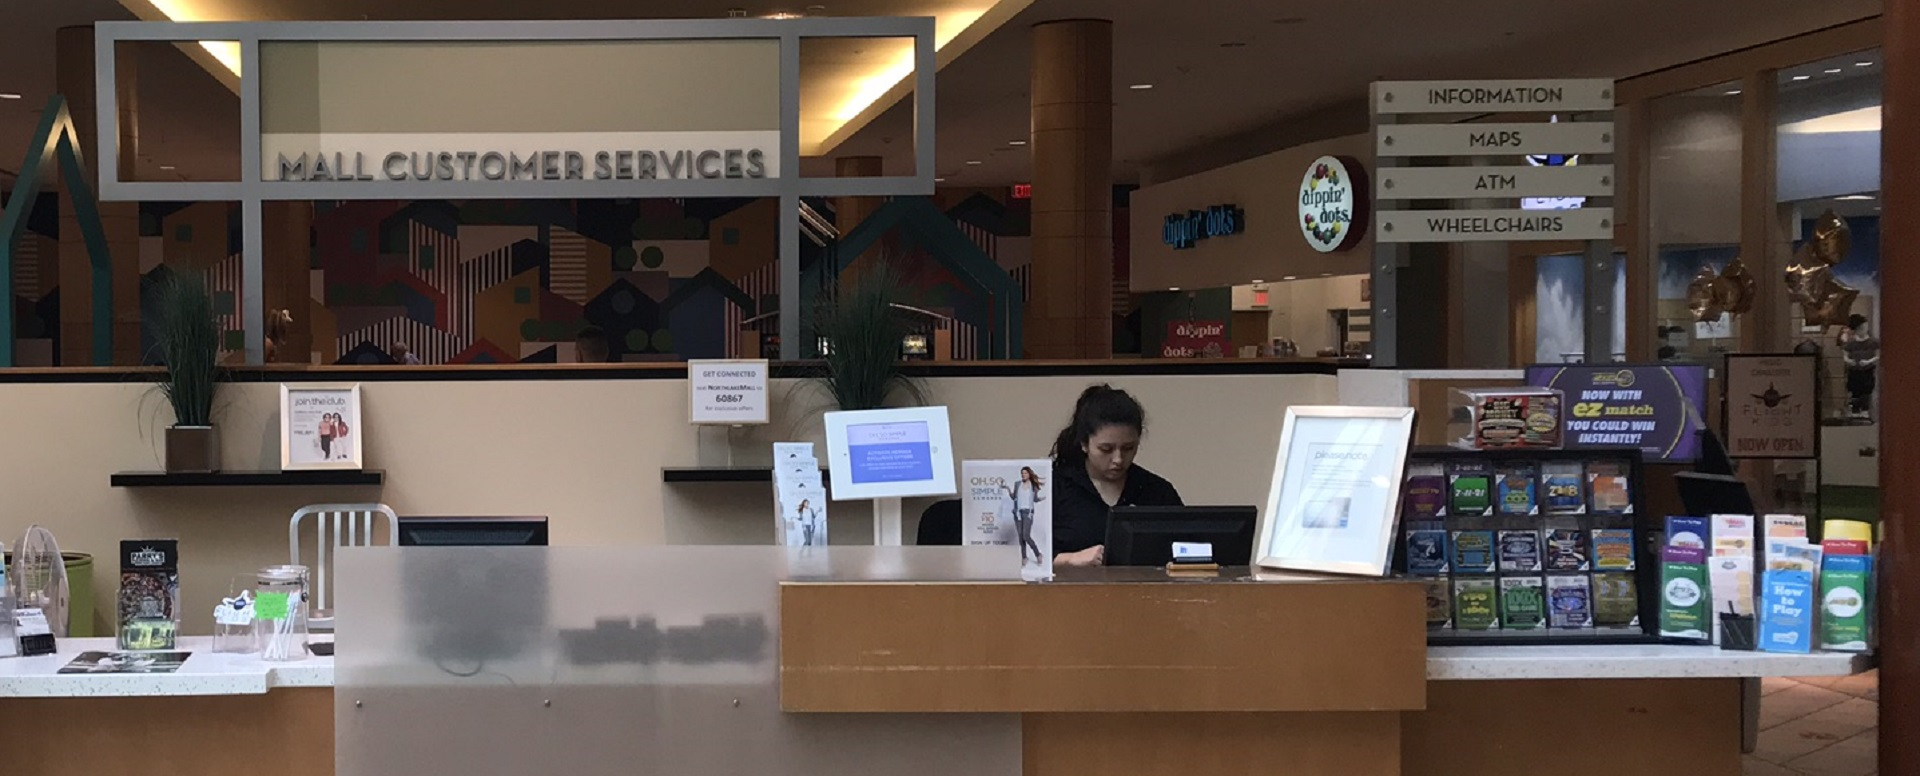 Mall Guest Services Desk